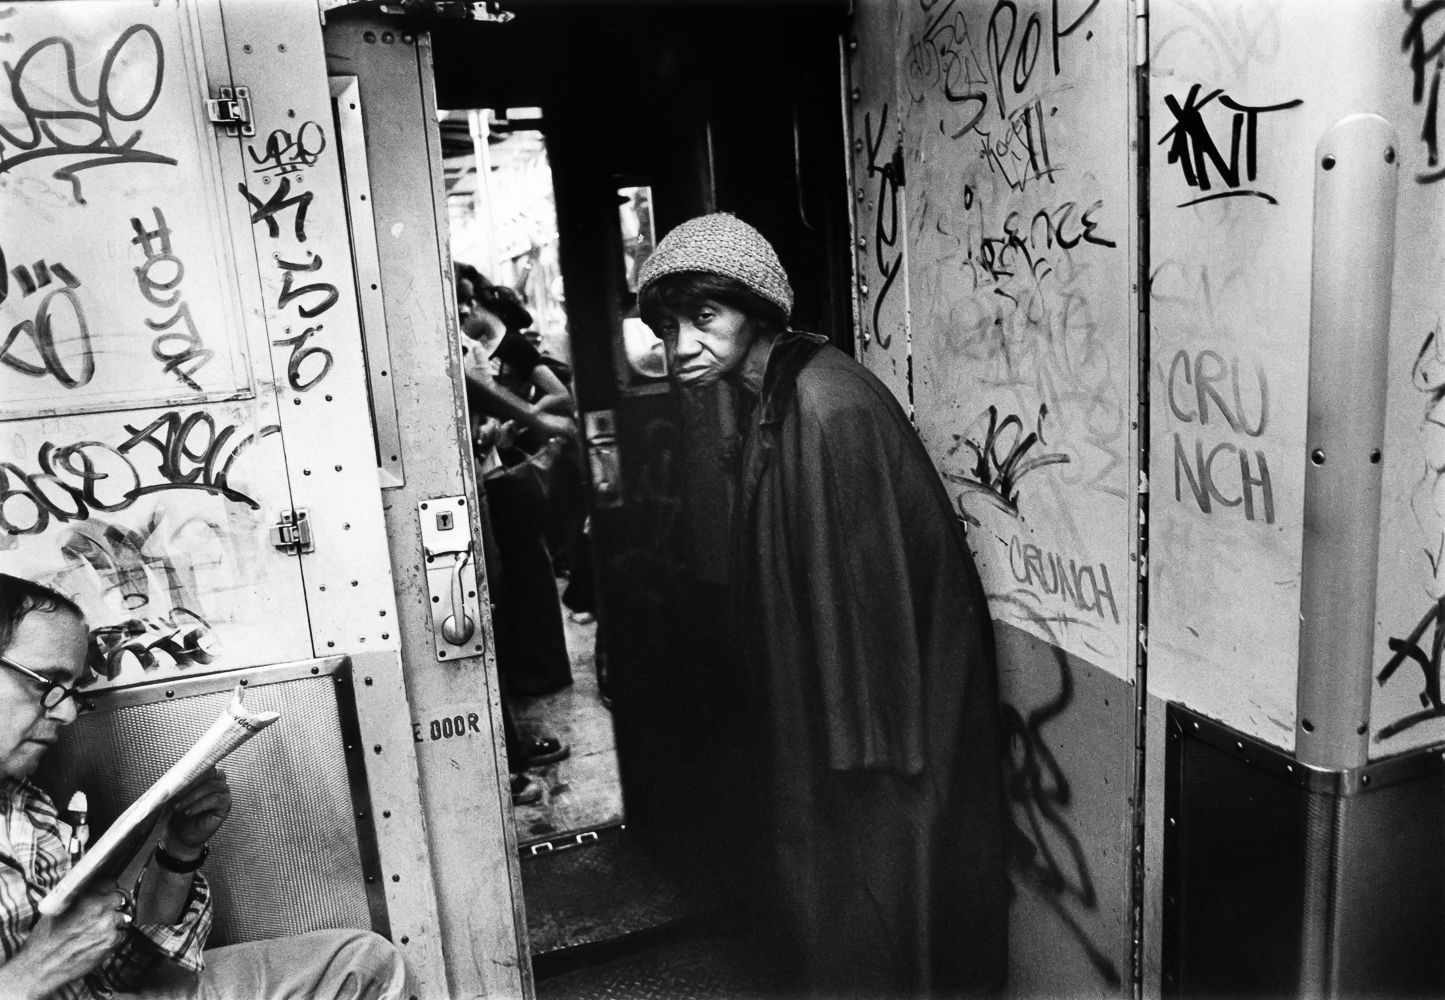 A New York City subway scene in the early '80s. Graffiti was everywhere. And poverty was more prevalent.